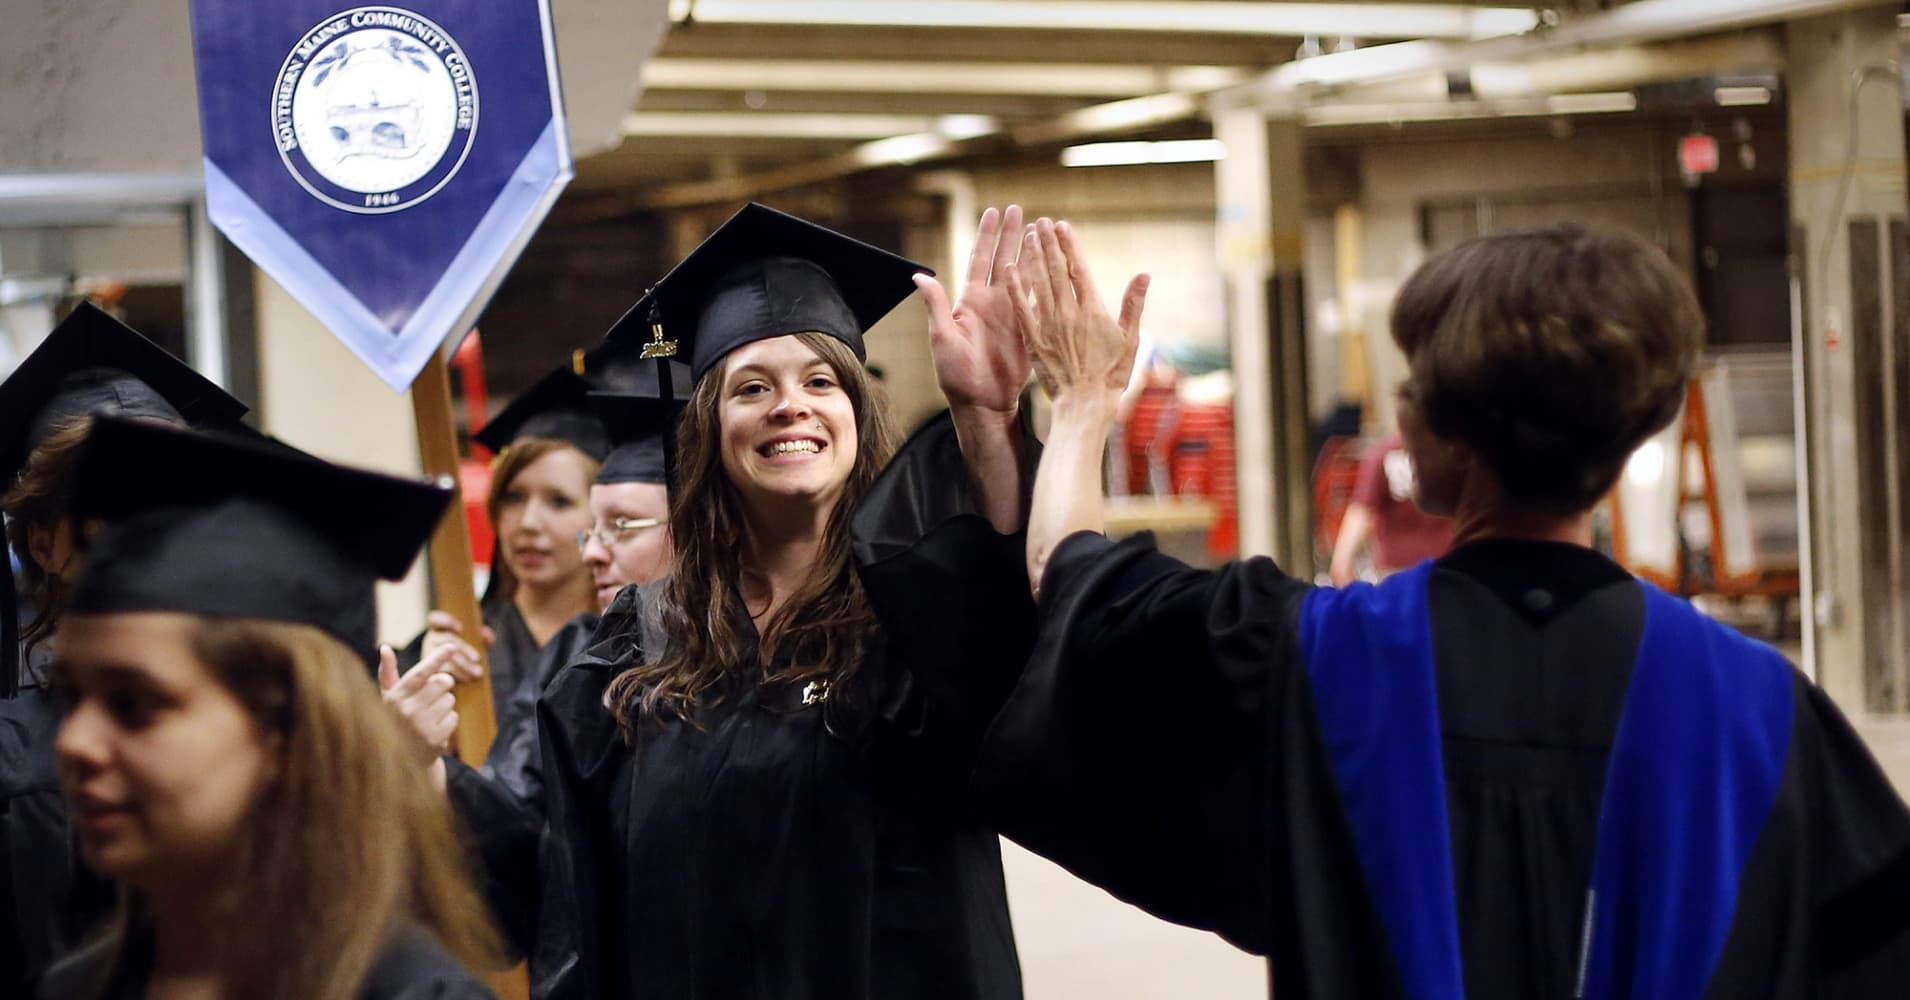 Tuition at community colleges is $3,660 a year on average—but here's how much students actually pay